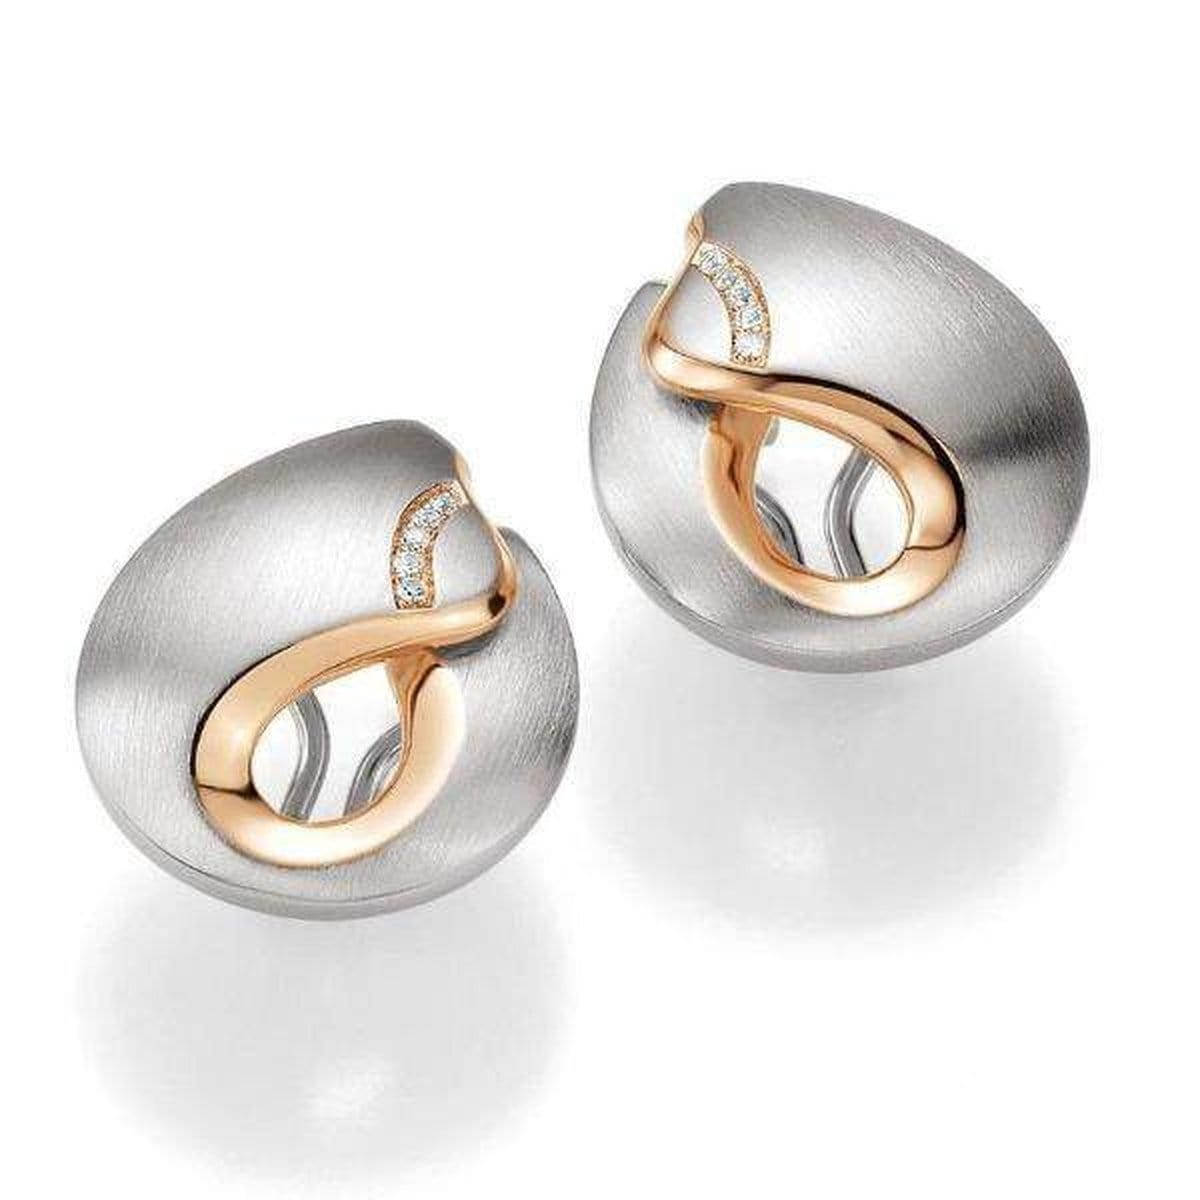 Rose Gold Plated Sterling Silver White Sapphire Earrings - 02/03664